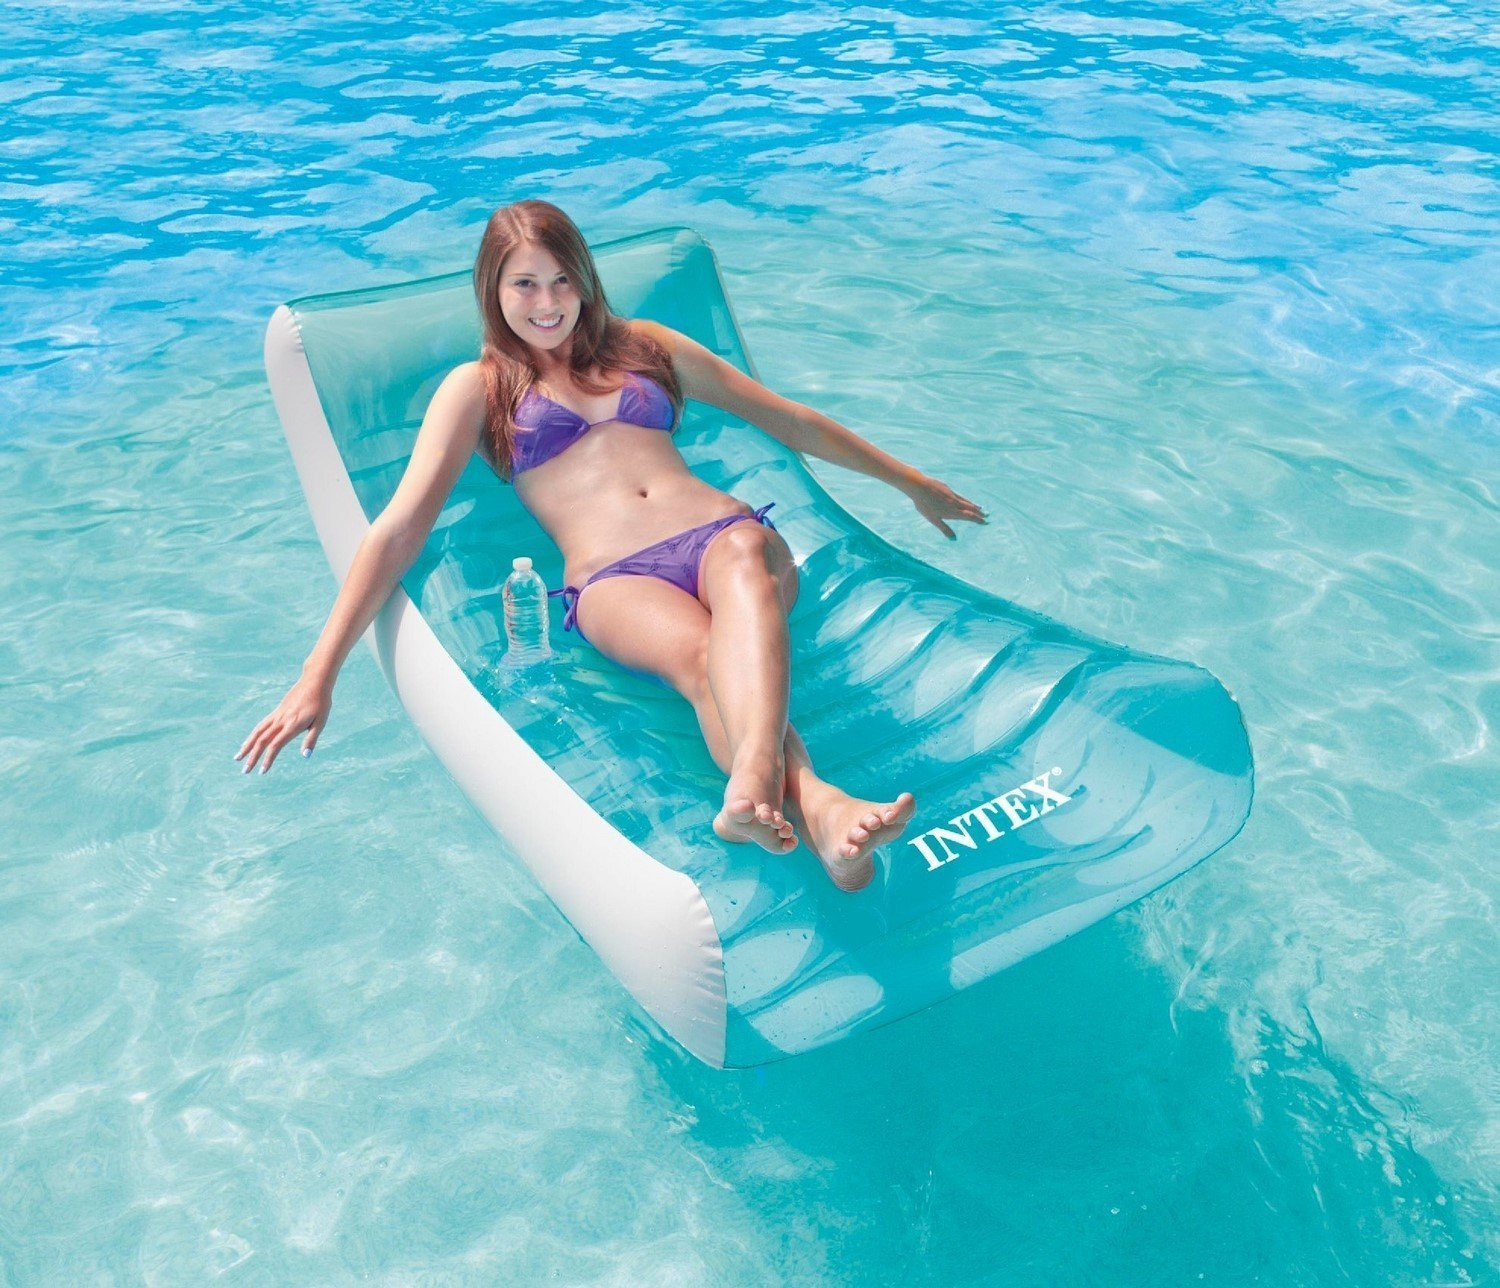 inflatable water chairs for adults argomax mesh ergonomic office chair uk 10 best swimming pool loungers 2019 top floating intex rockin lounge